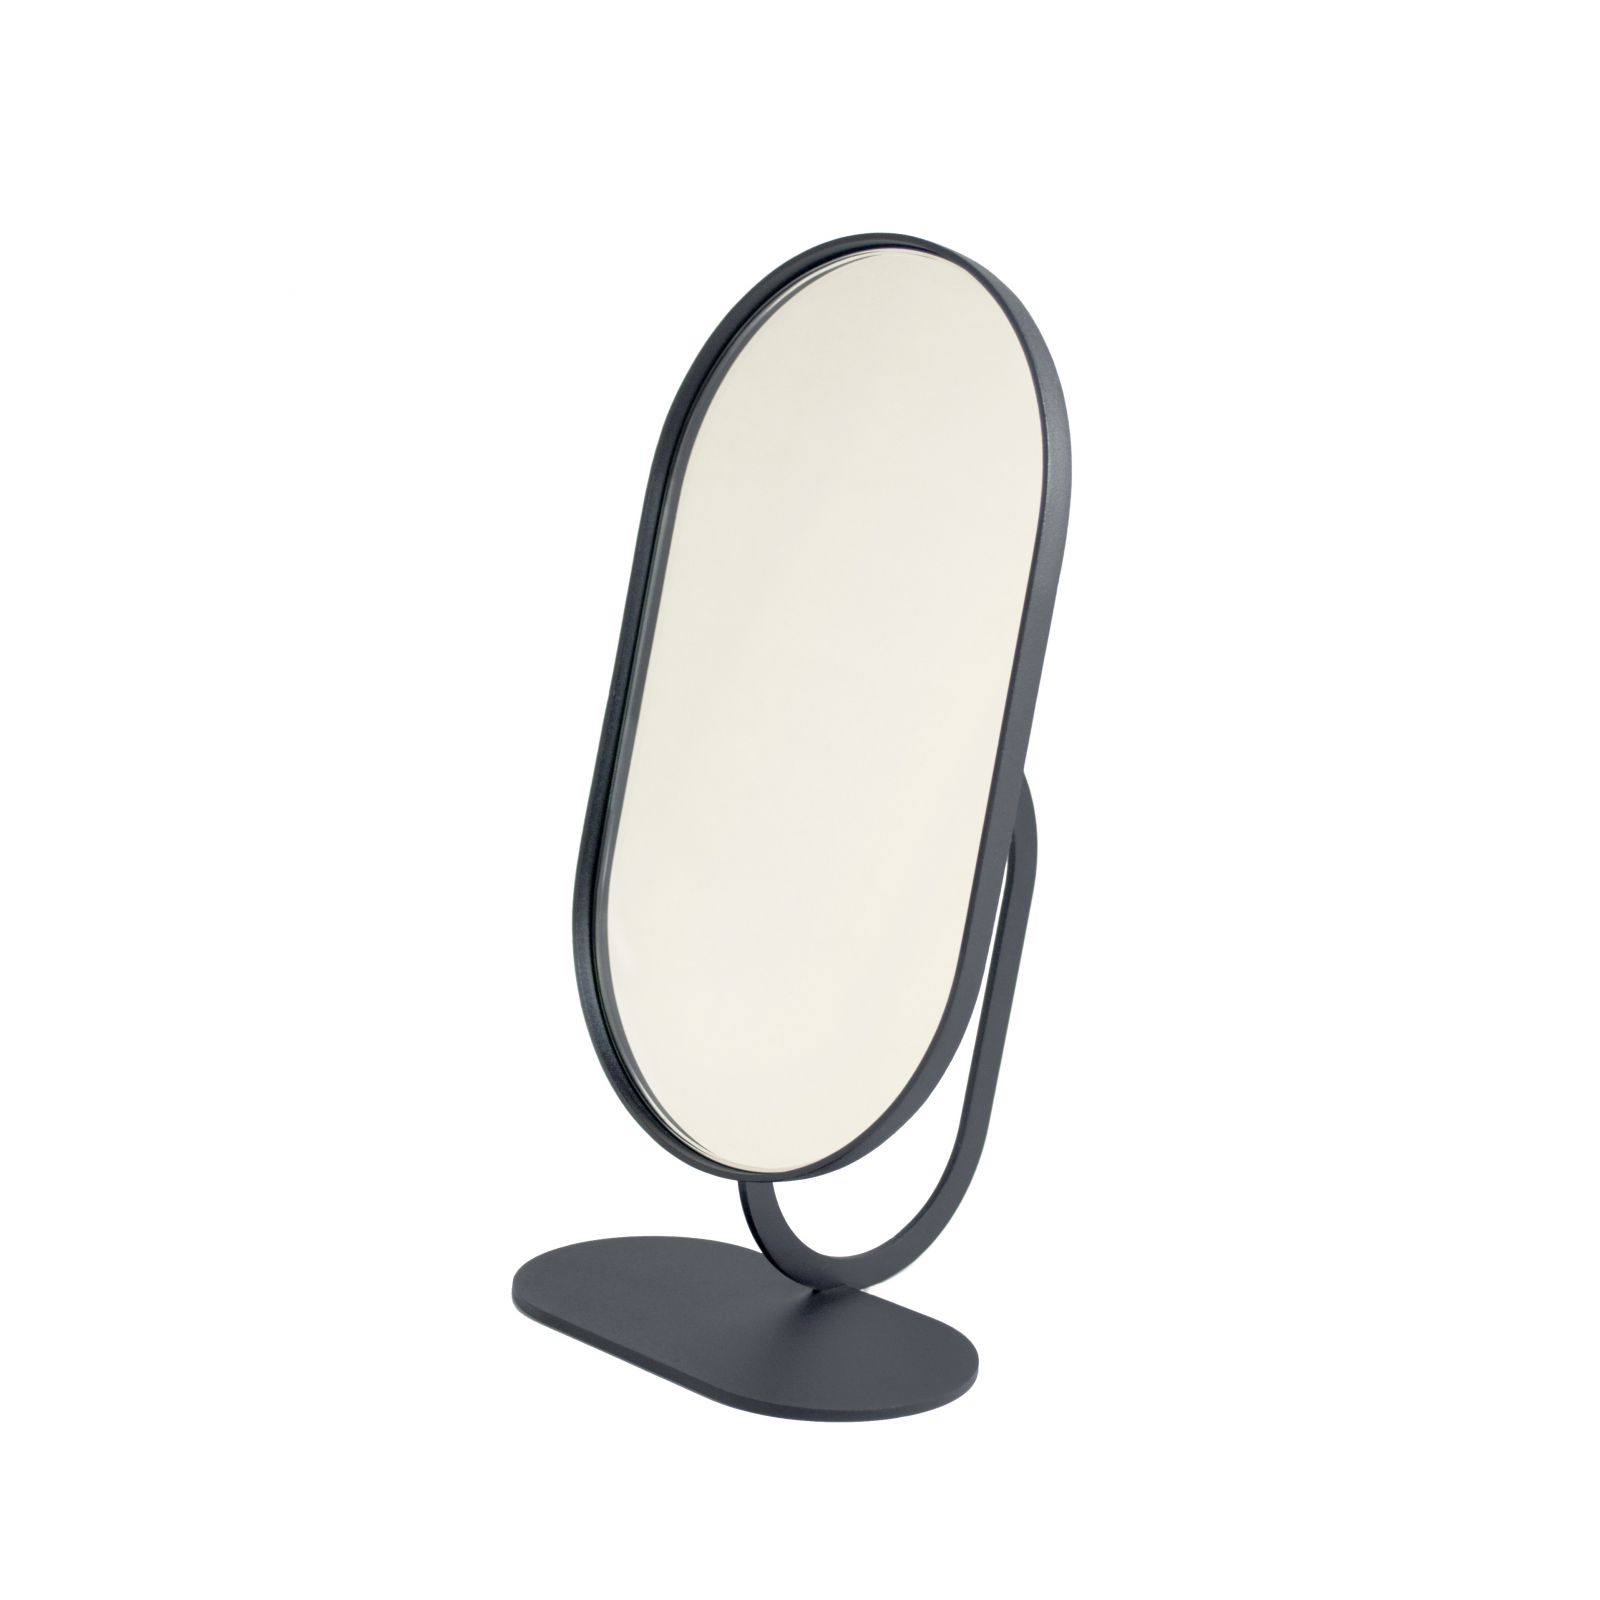 soll mirror, doll table mirror, lustro stołowe, róu products, róu, rouproducts.com, rou products